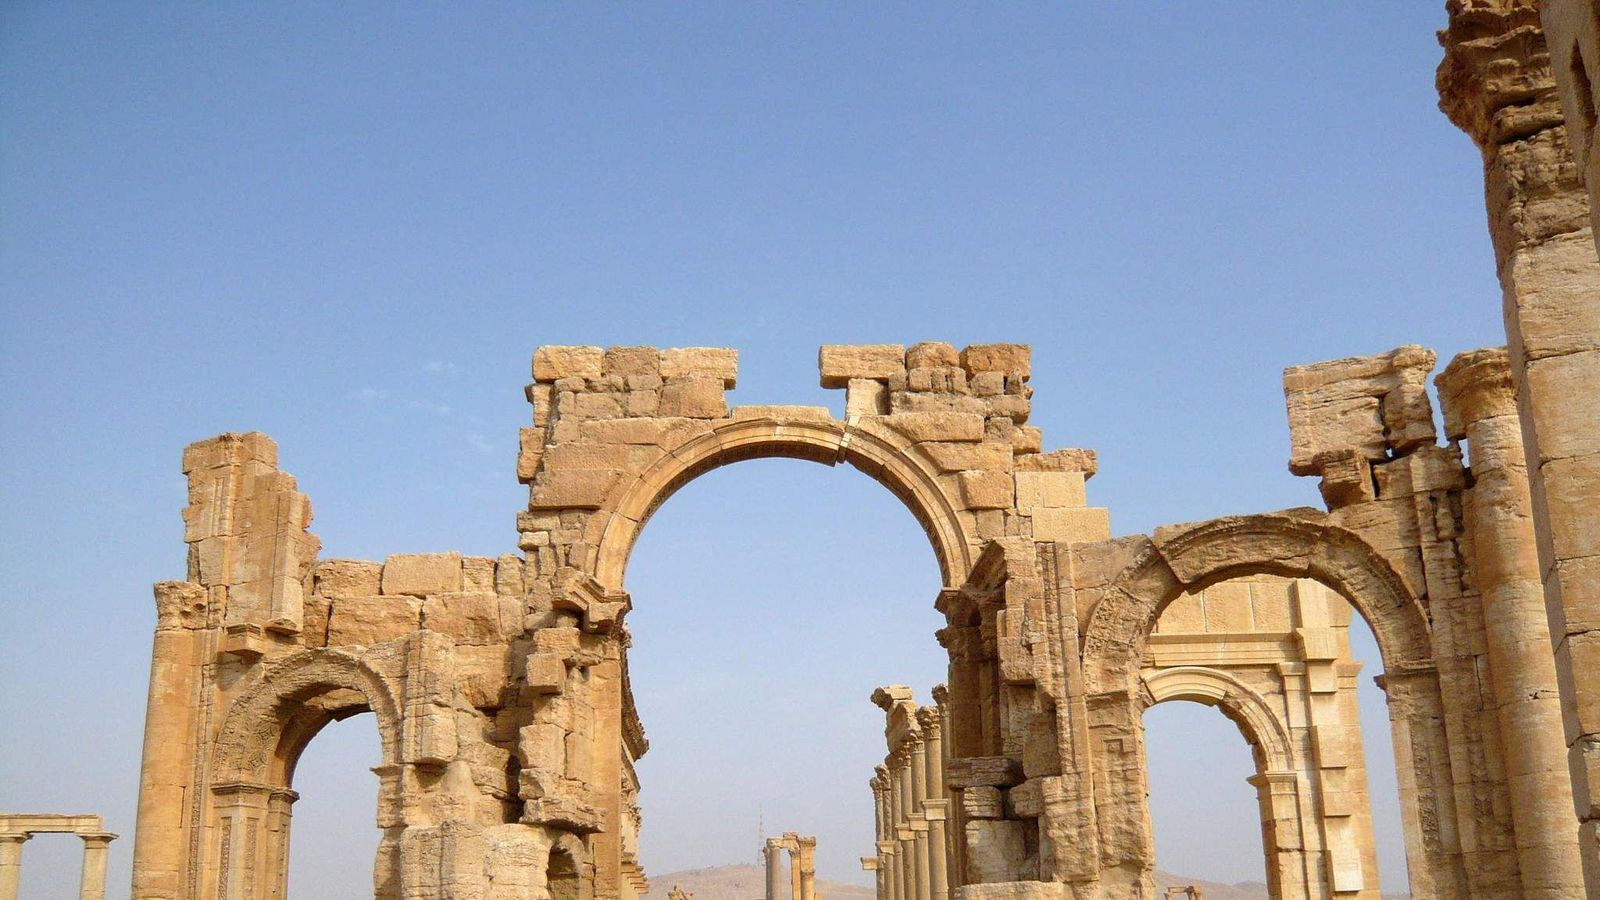 Monumental Arch in the historical city of Palmyra